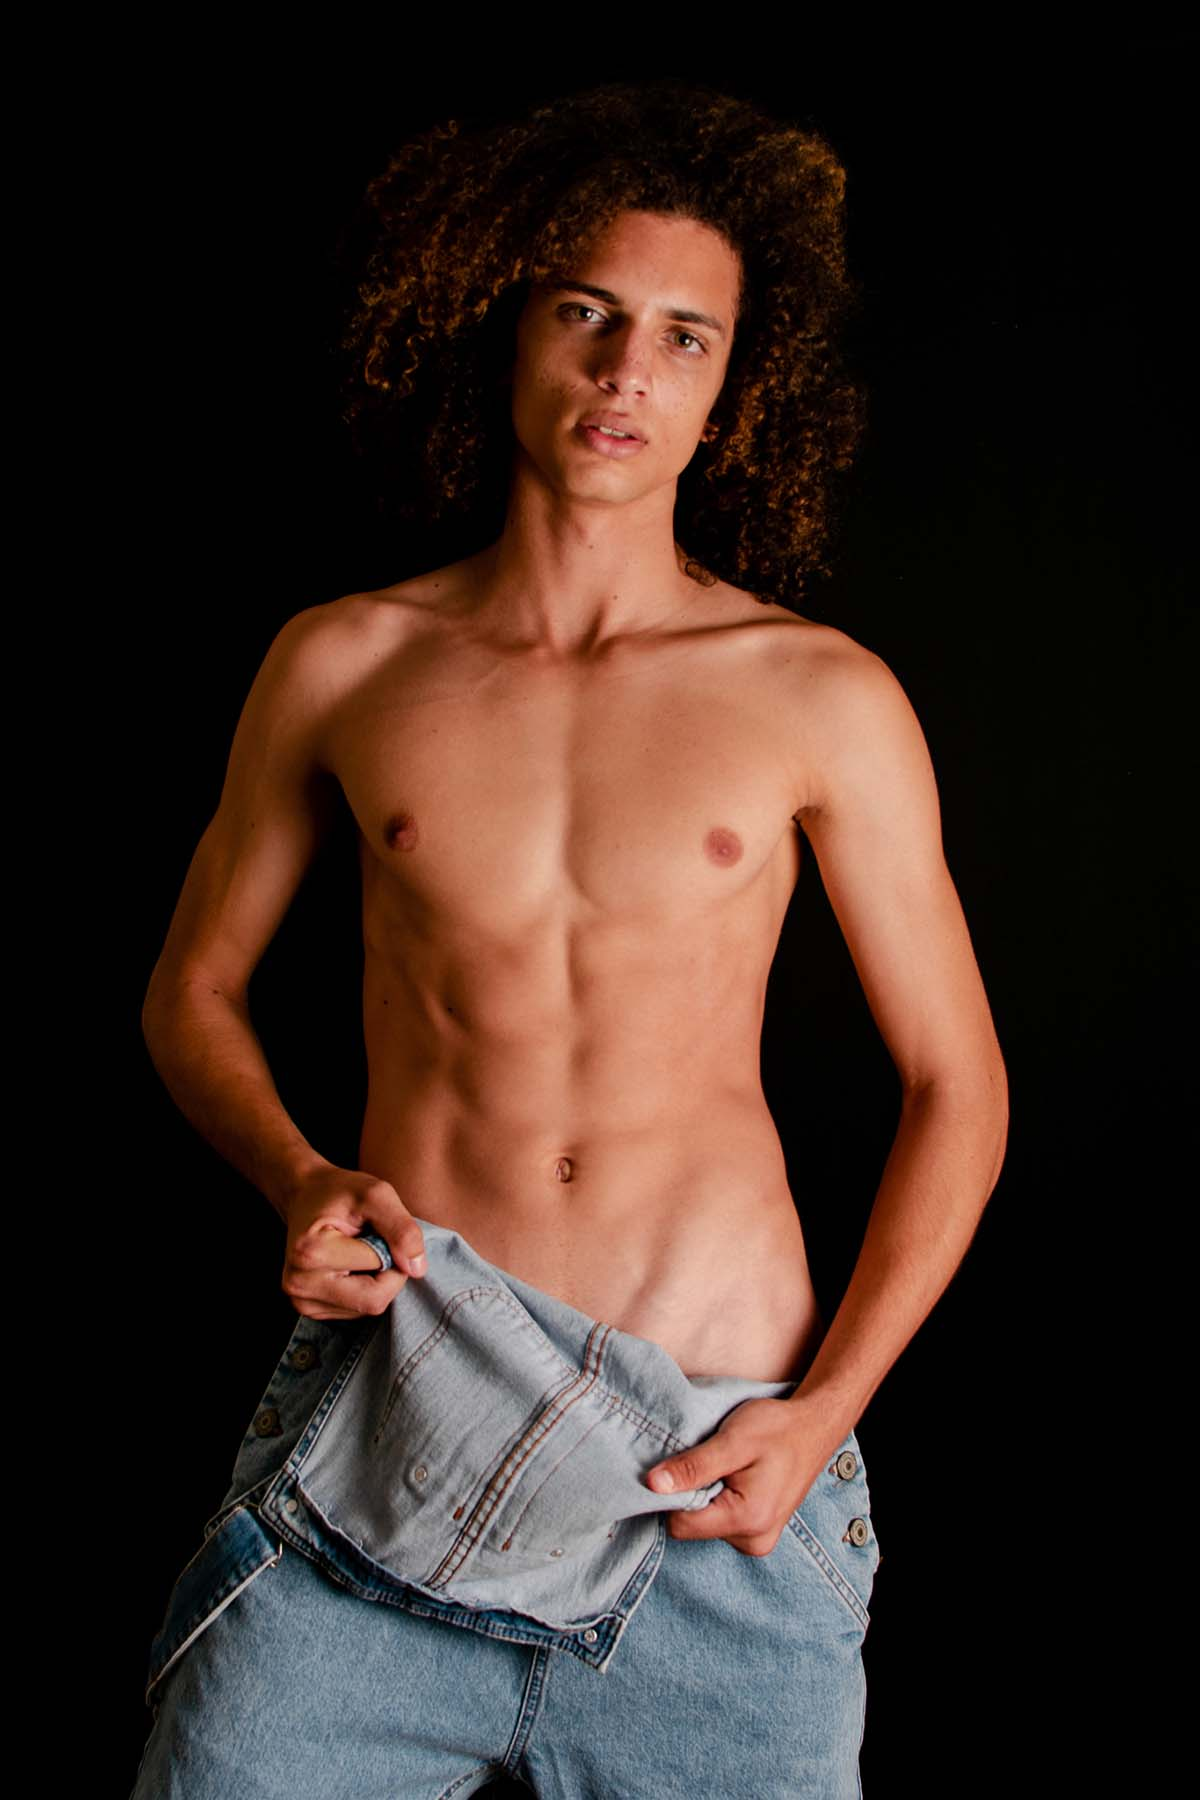 Joany Arantes by Rômulo Alberto for Brazilian Male Model